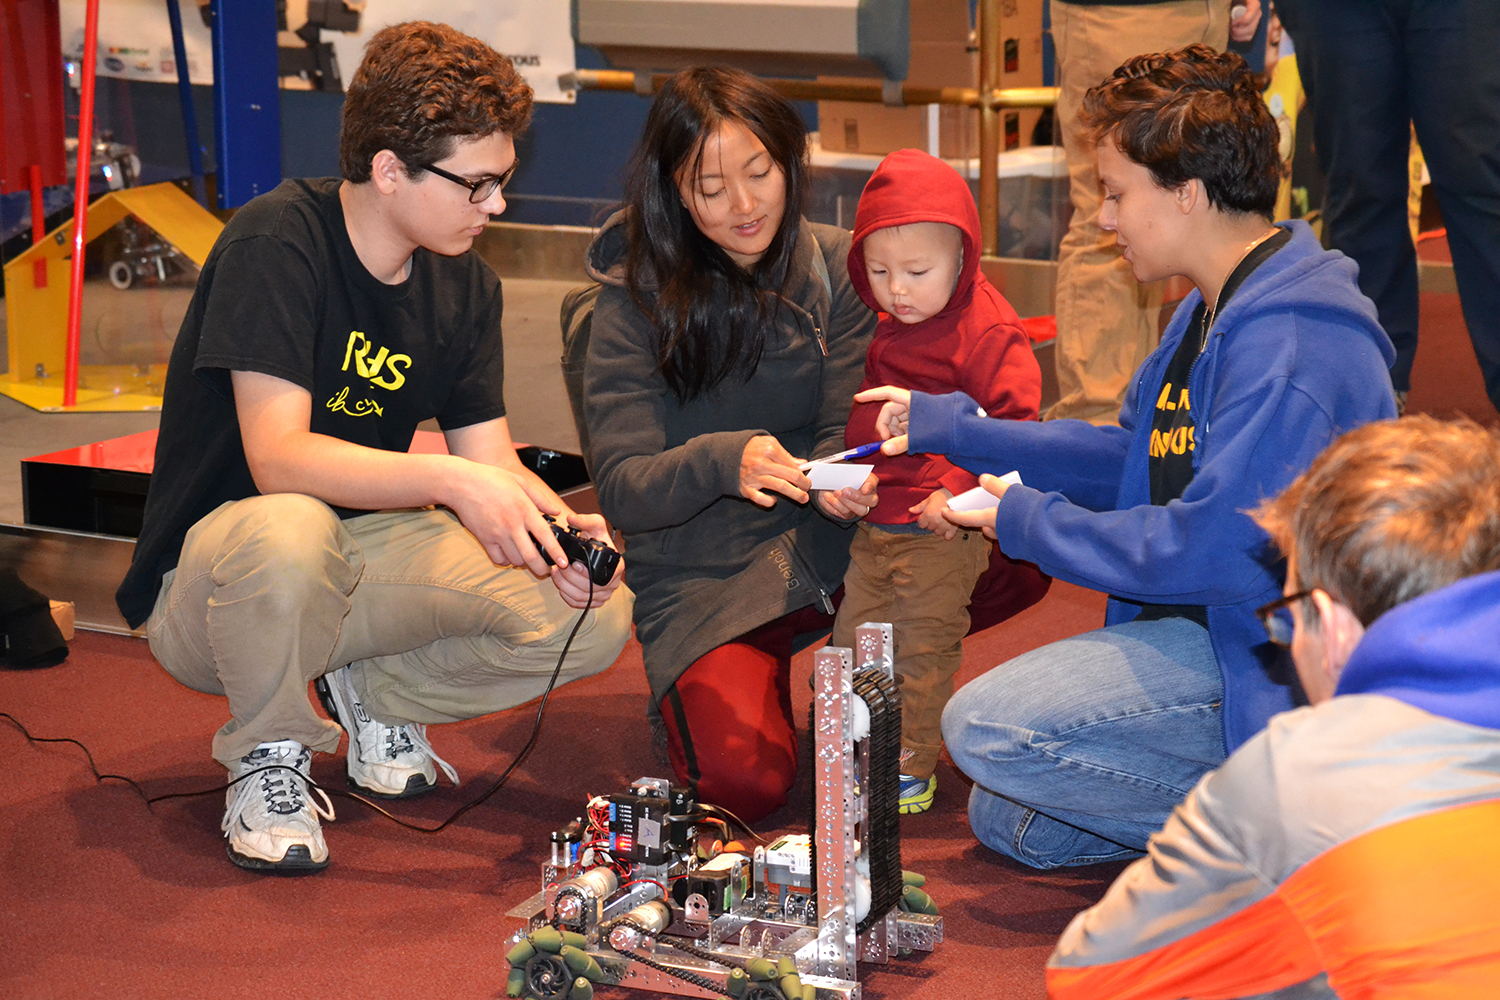 A student demonstrates a FIRST robot to onlookers